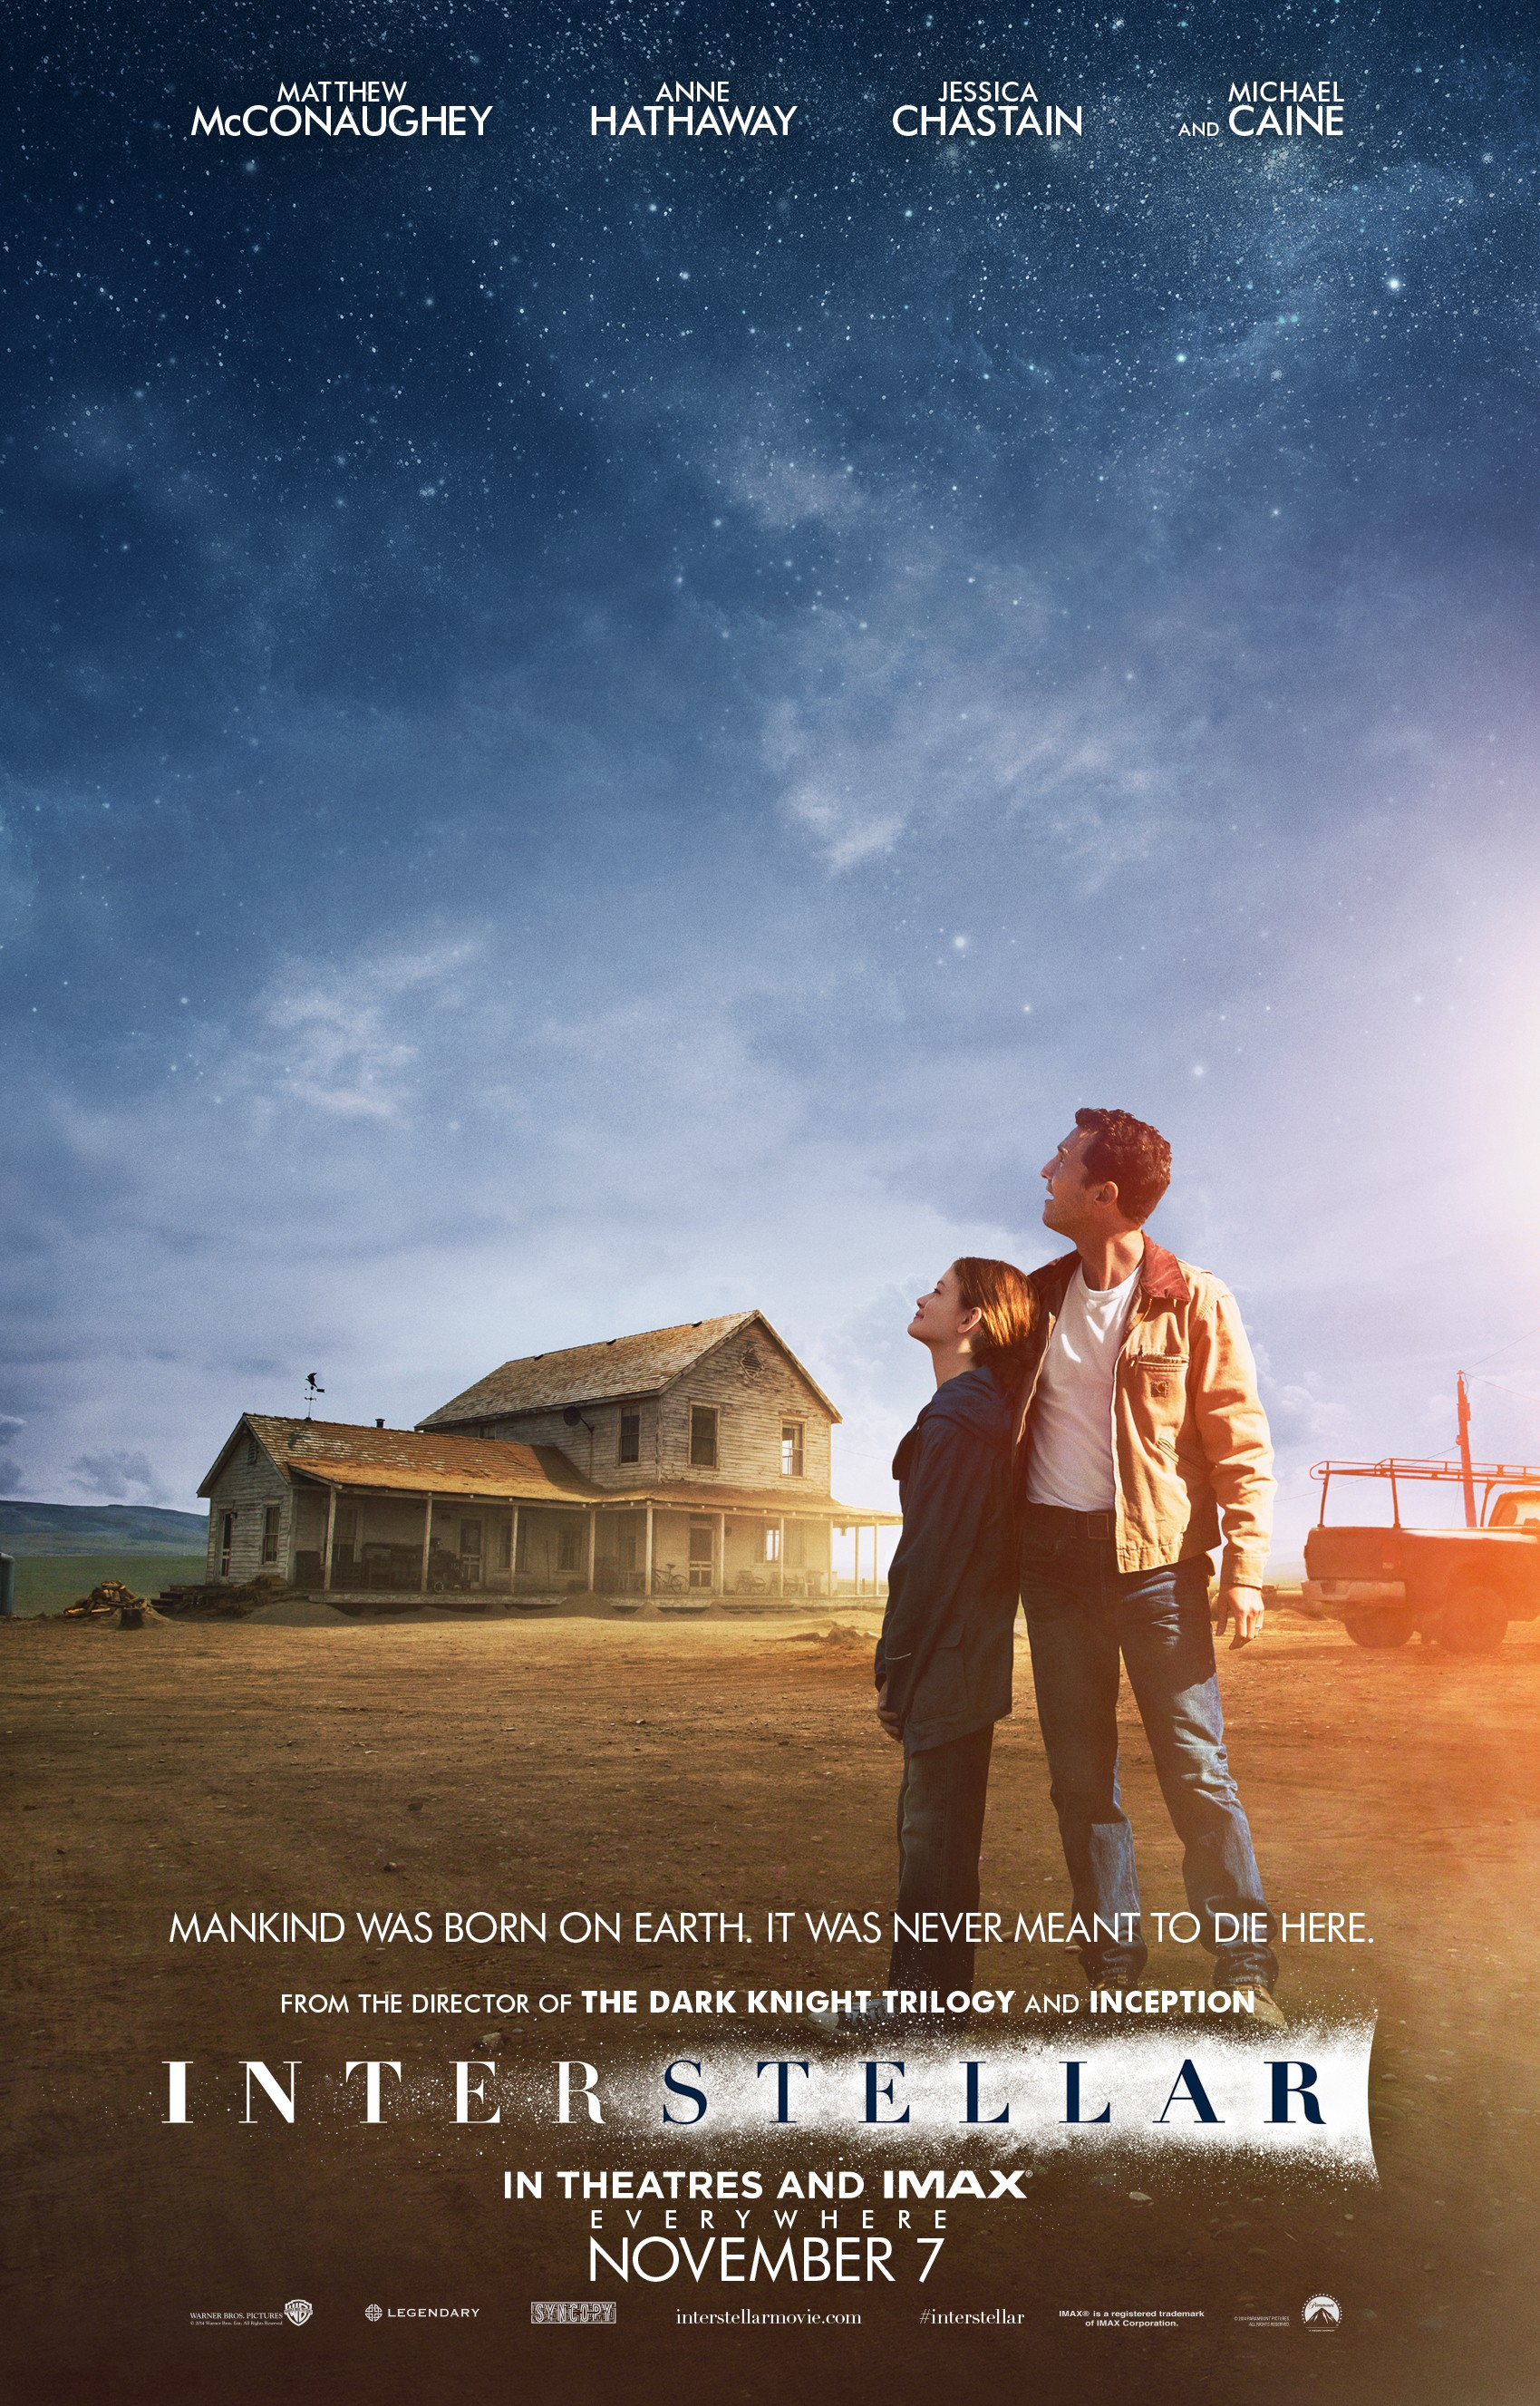 Interstellar-Official Poster Banner PROMO XXLG-19SETEMBRO2014-02